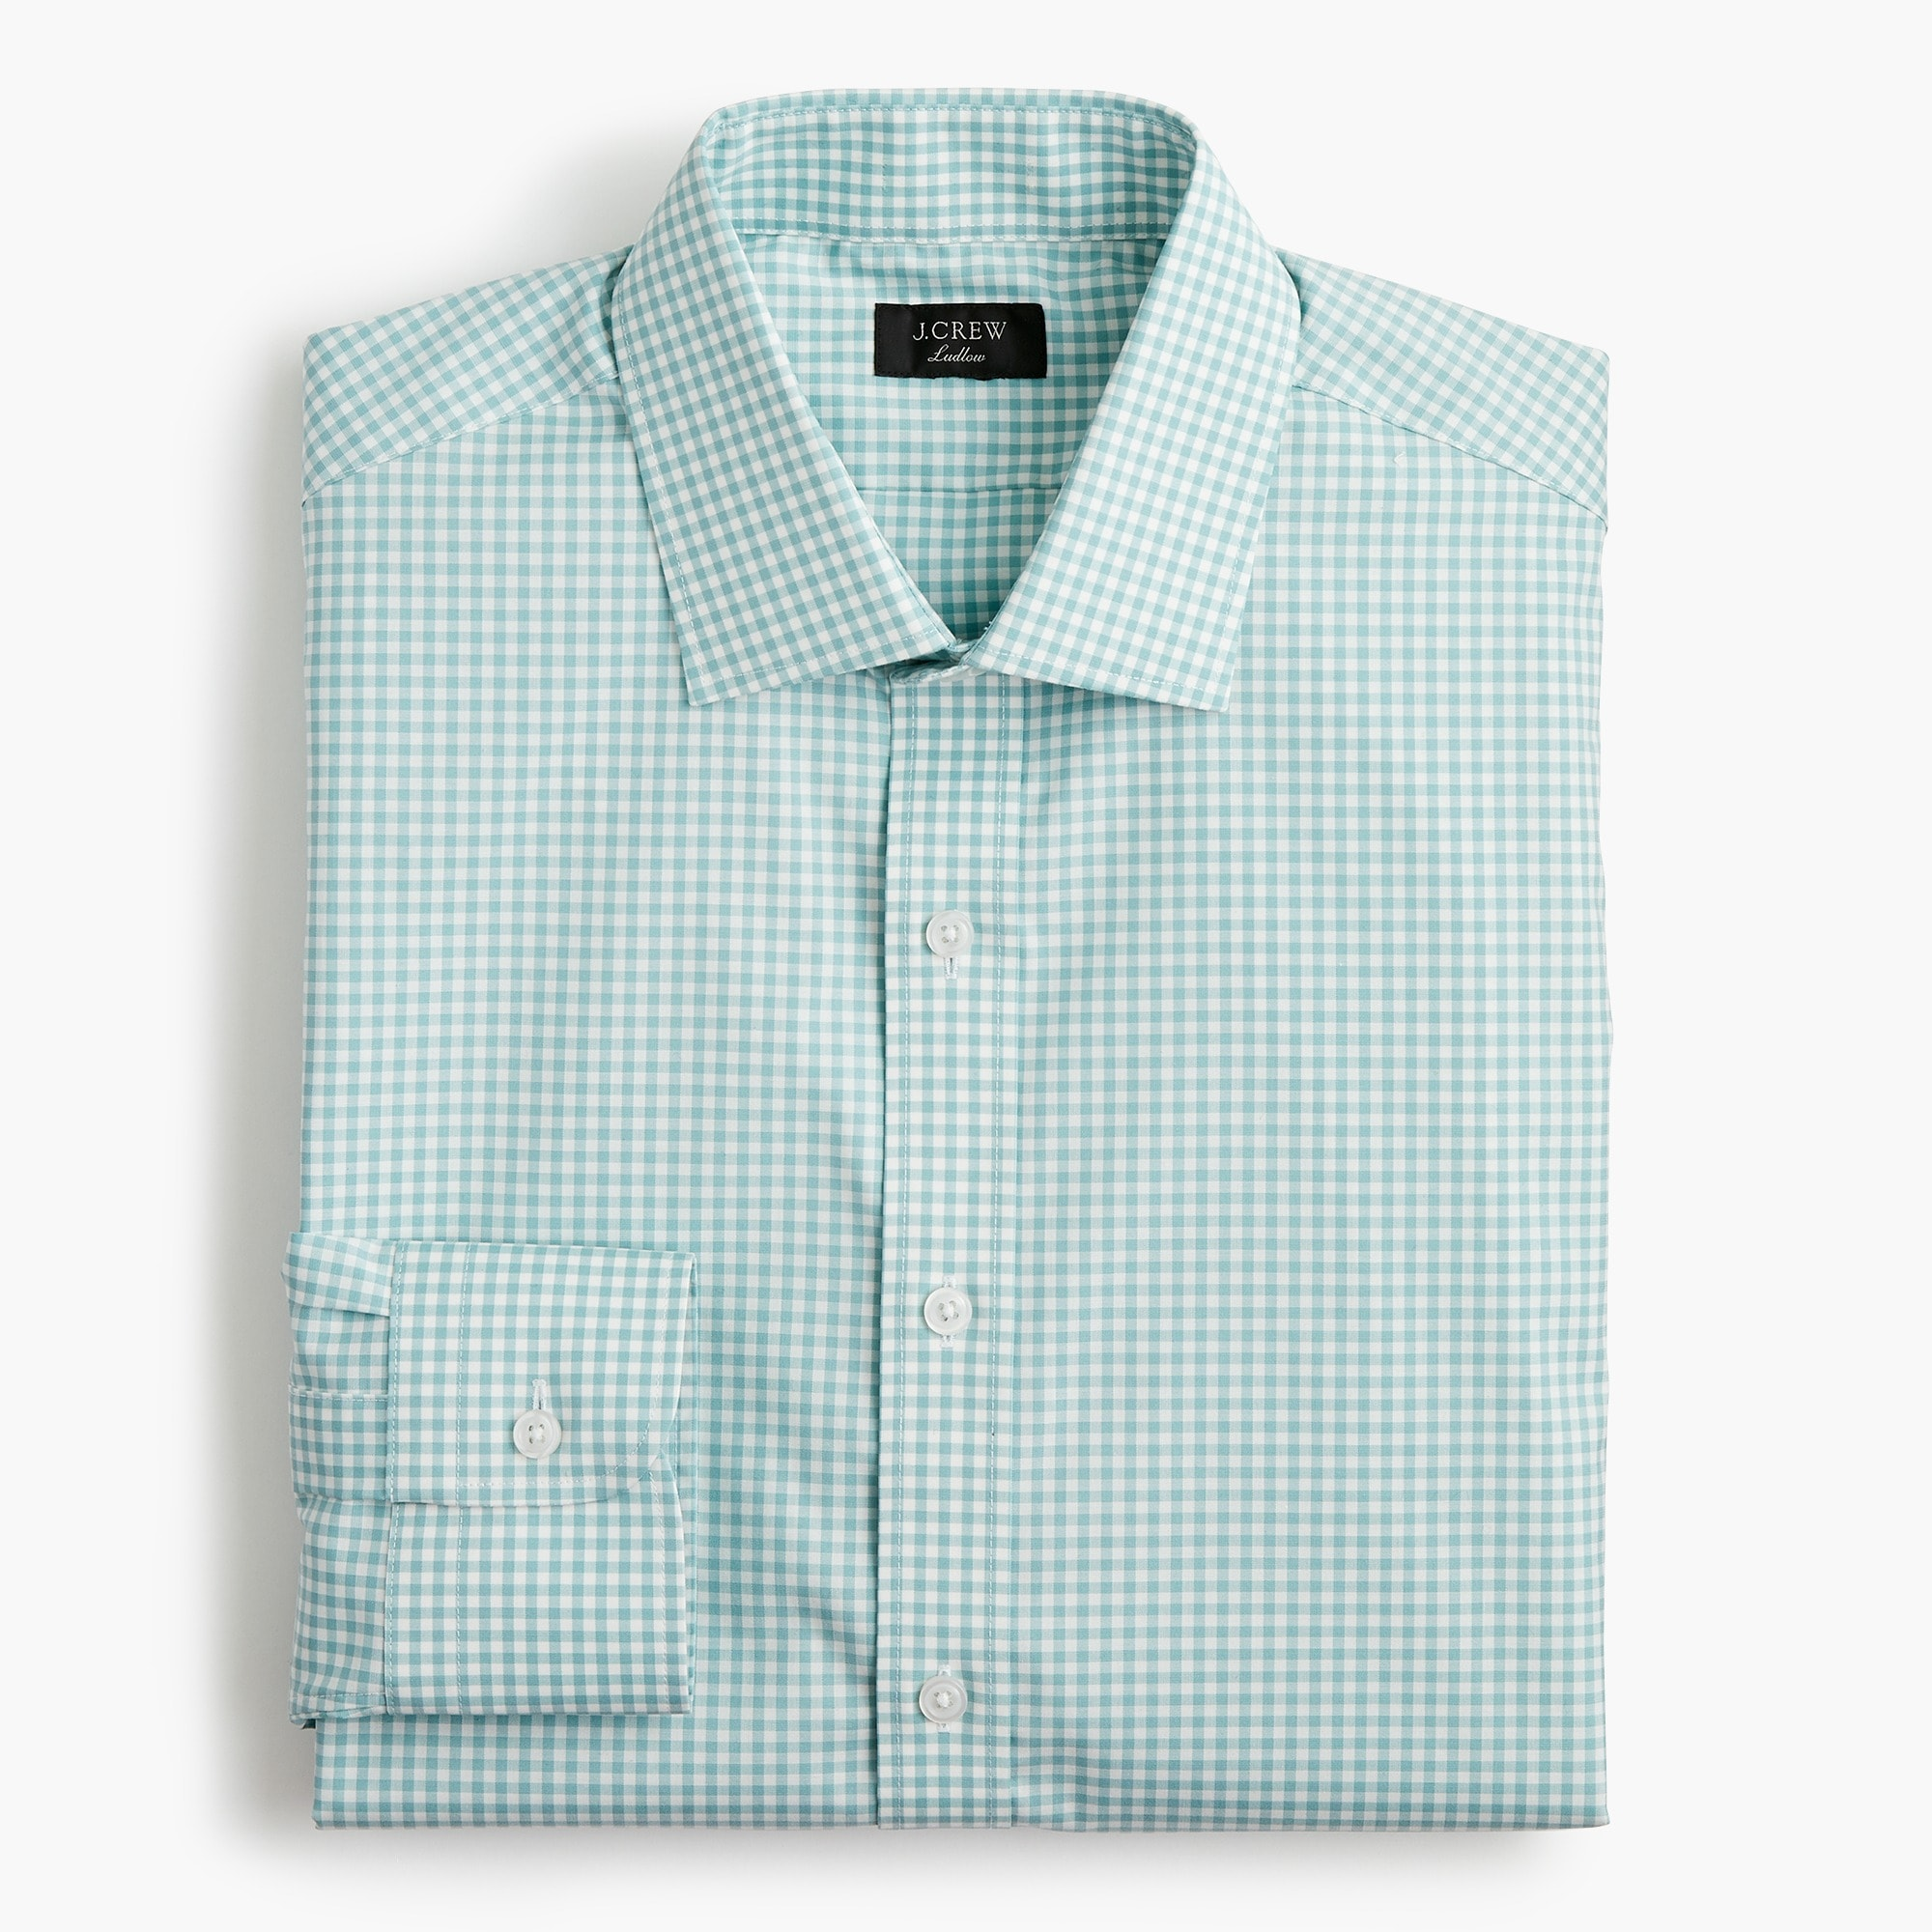 mens Ludlow stretch two-ply easy-care cotton dress shirt in aqua gingham